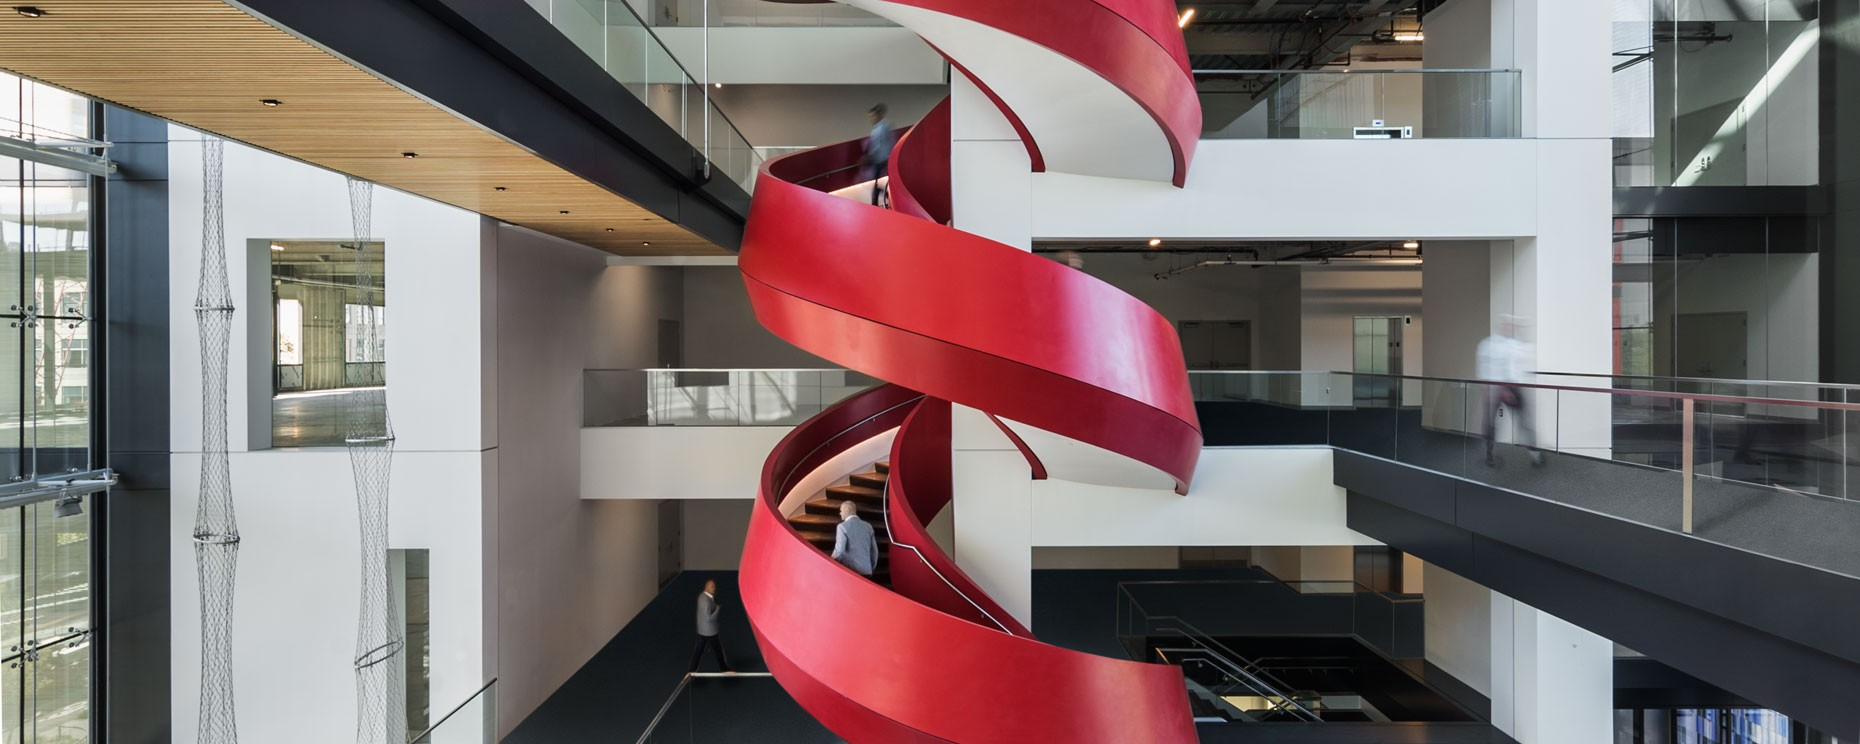 Ariad Pharmaceuticals, 75/125 Binney Street, Boston. Thermoformed solid surface spiral staircase with compound angles